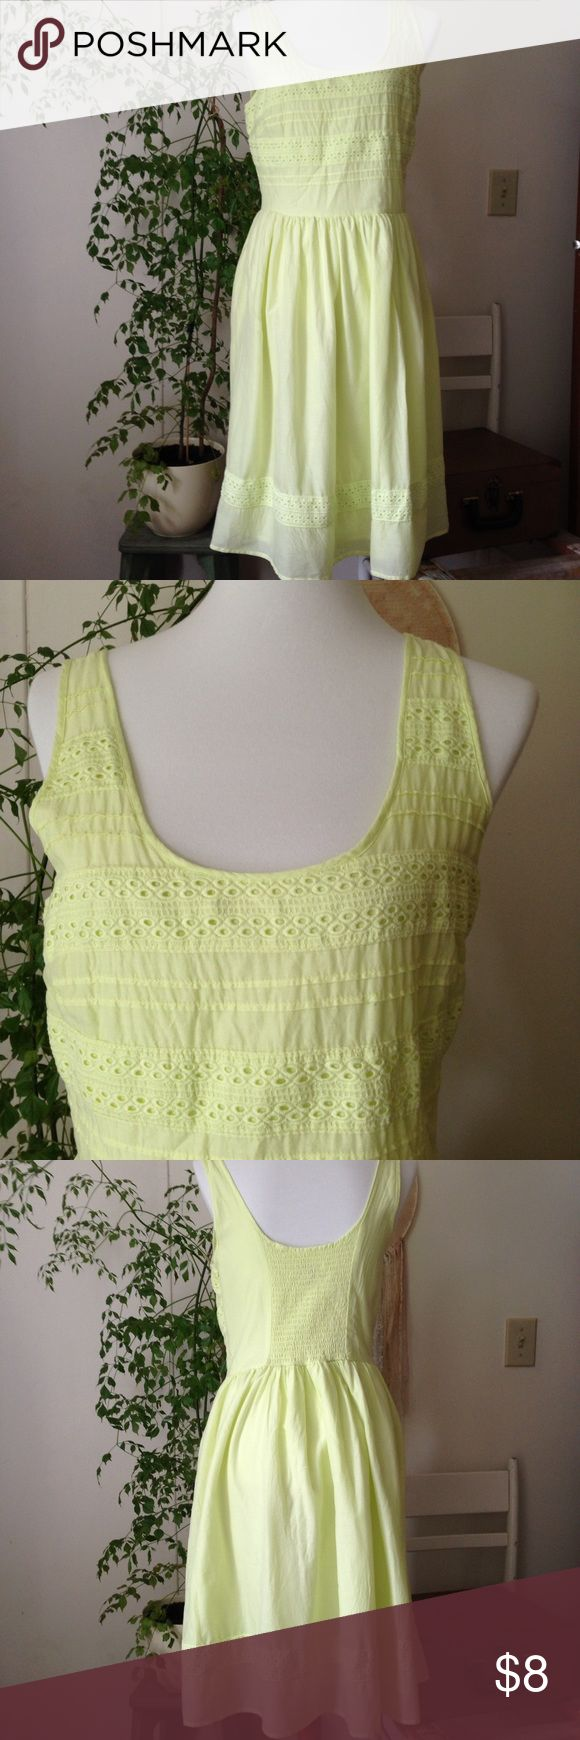 "Old Navy Neon Green Cami Dress with crochet detail Sweet and sassy dress. Great for spring and summer. Crochet detail on bodice and hem. Wide straps, side zipper and elastic smocking in back. Lined skirt. 17"" across chest 40 1/4"" shoulder to hem. Size Medium Tall Old Navy Dresses Midi"